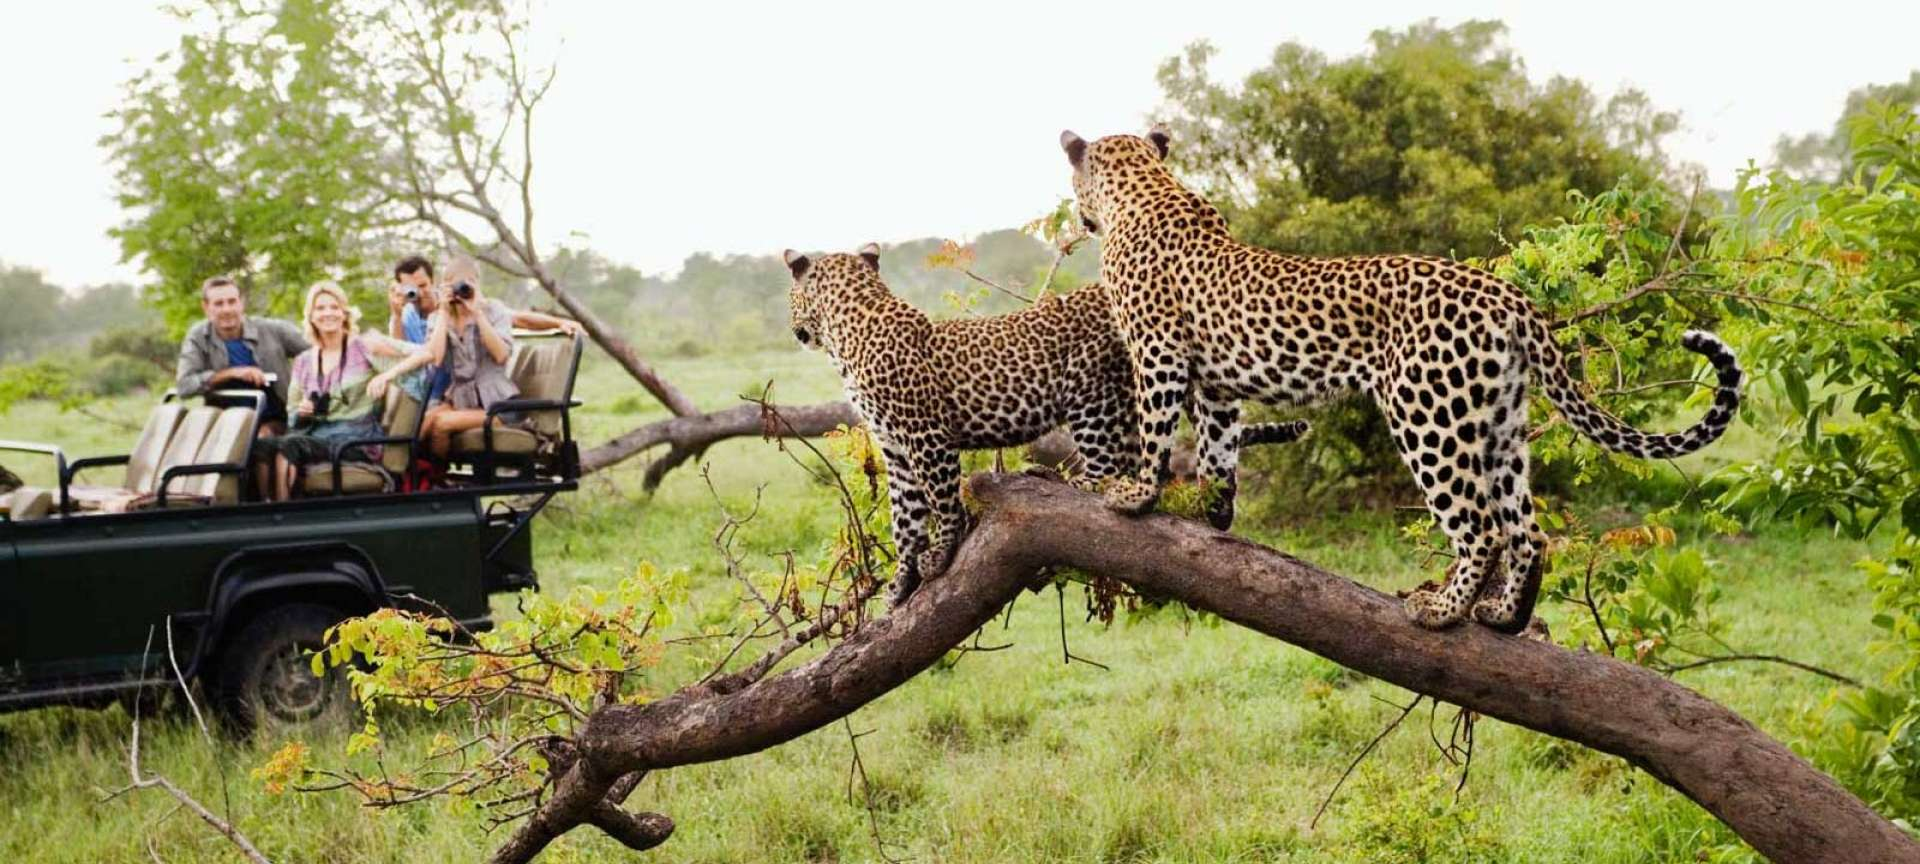 Private Game Reserves in the Greater Kruger National Park ...